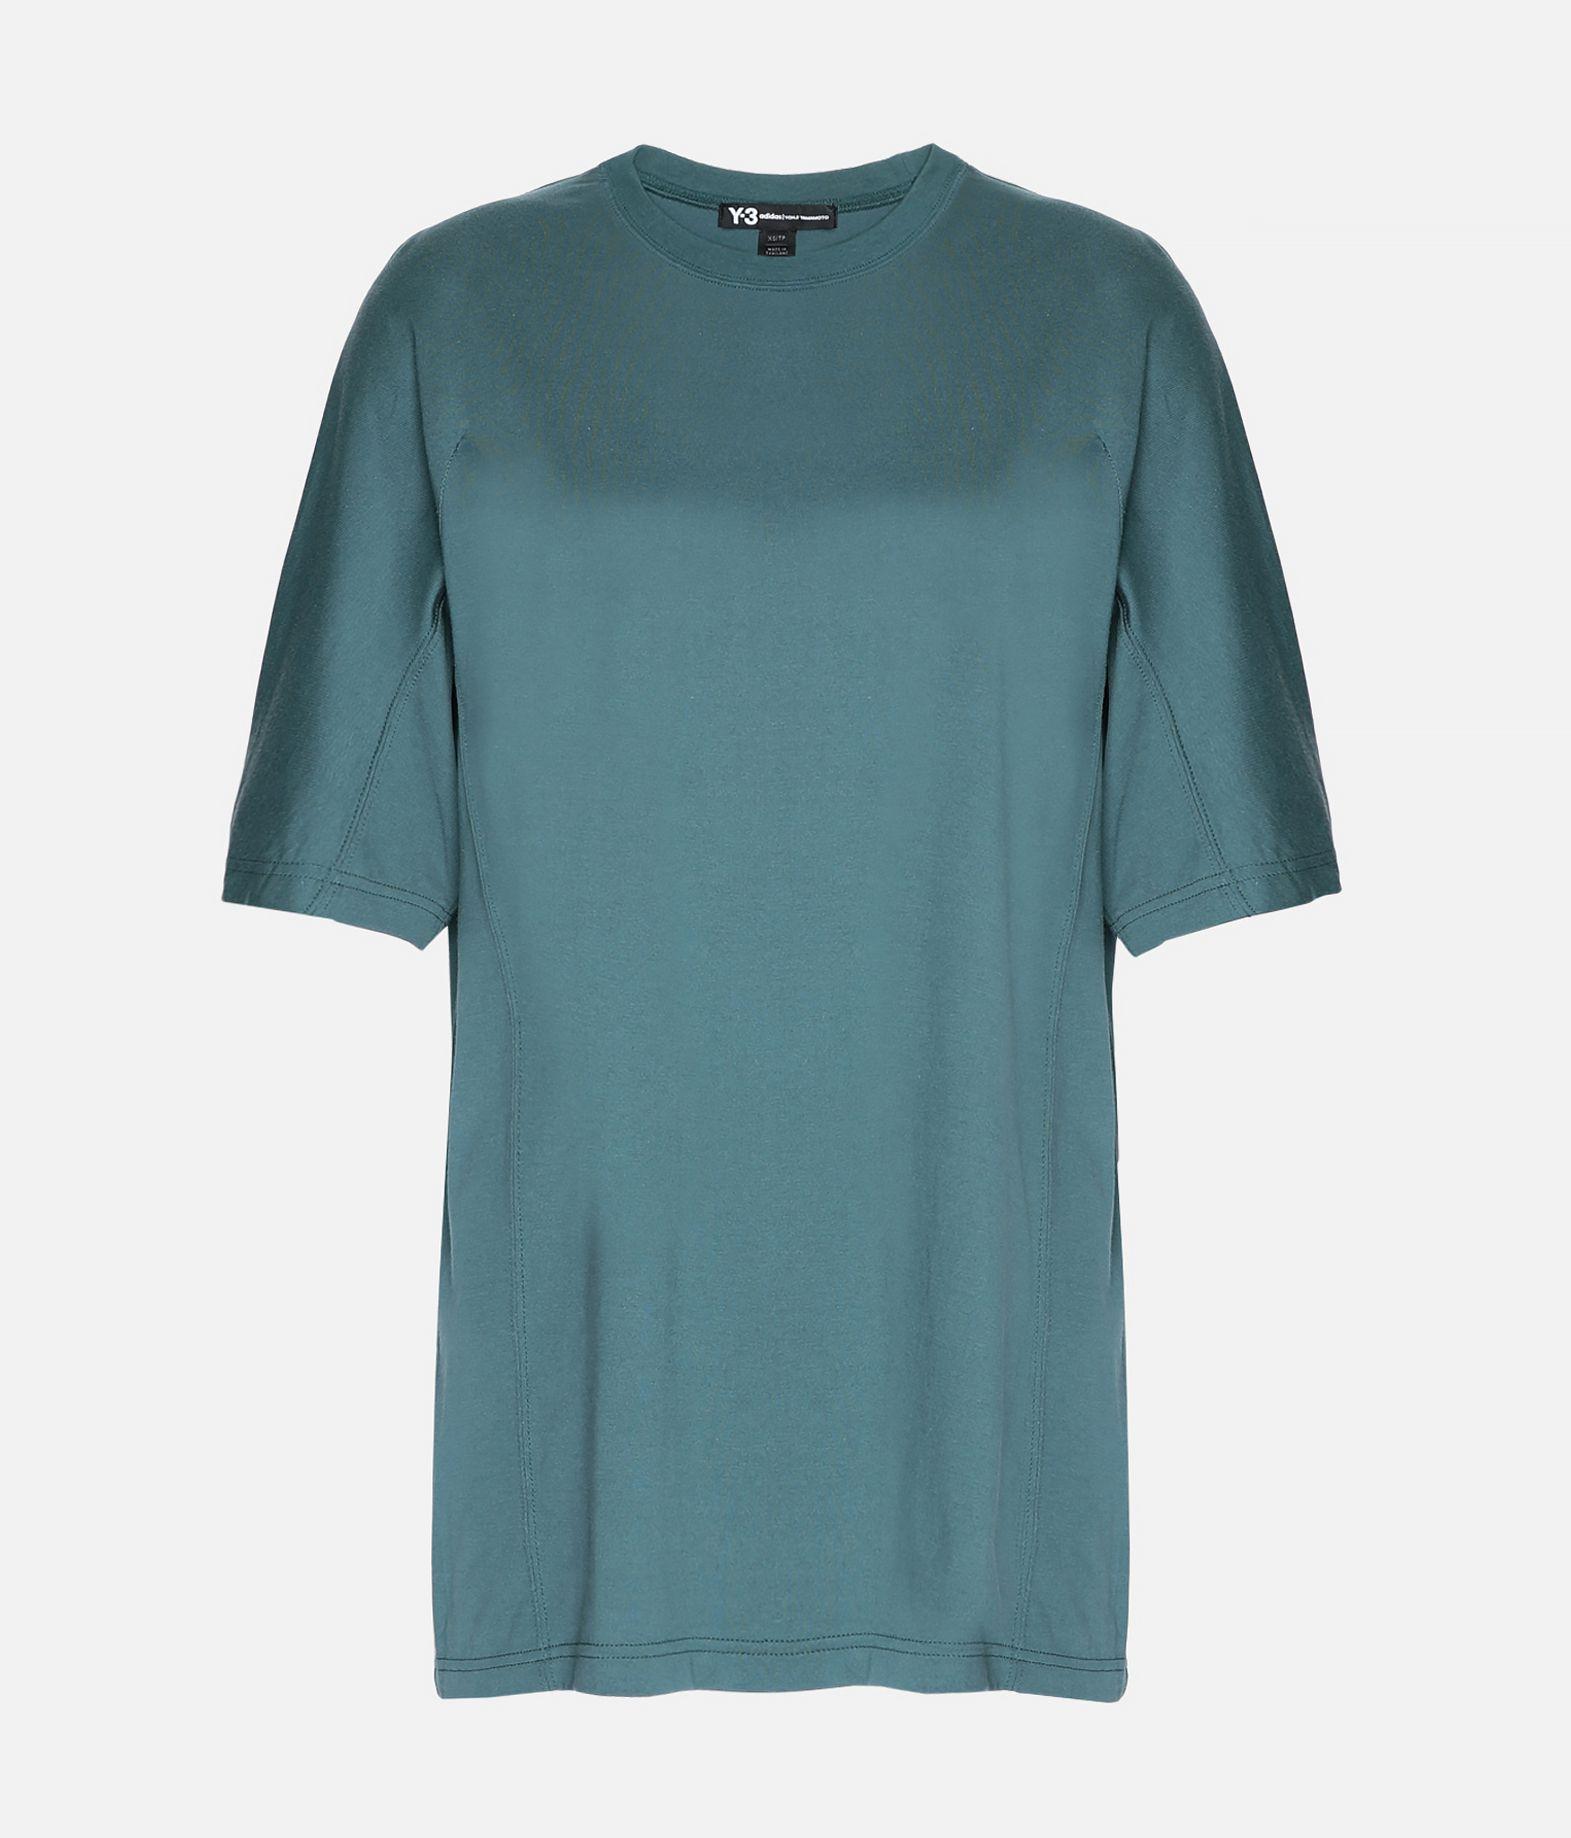 Y-3 Y-3 New Classic Tee  Short sleeve t-shirt Woman f